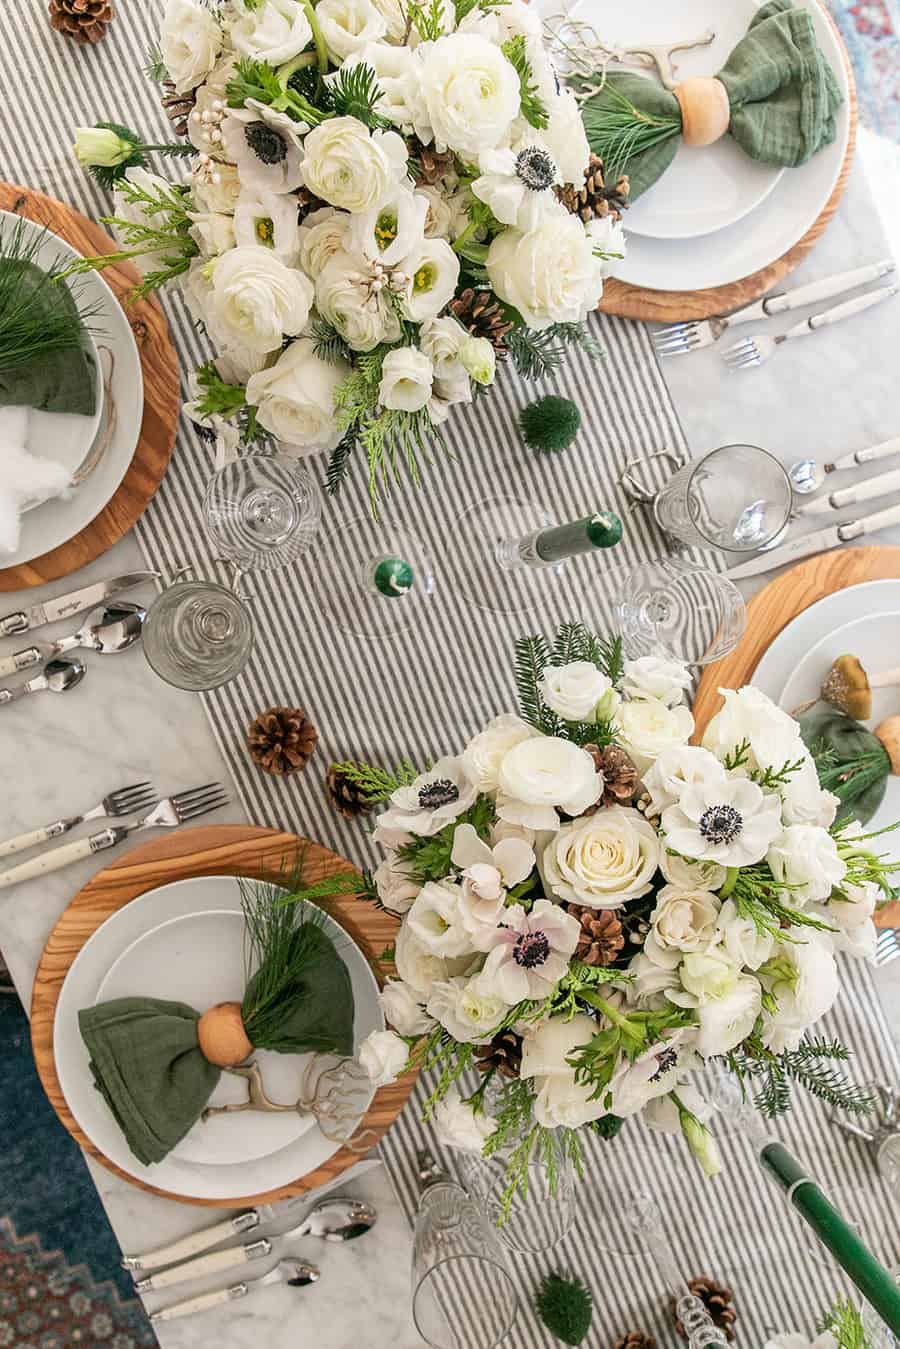 Flowers on a table with a striped table runner.